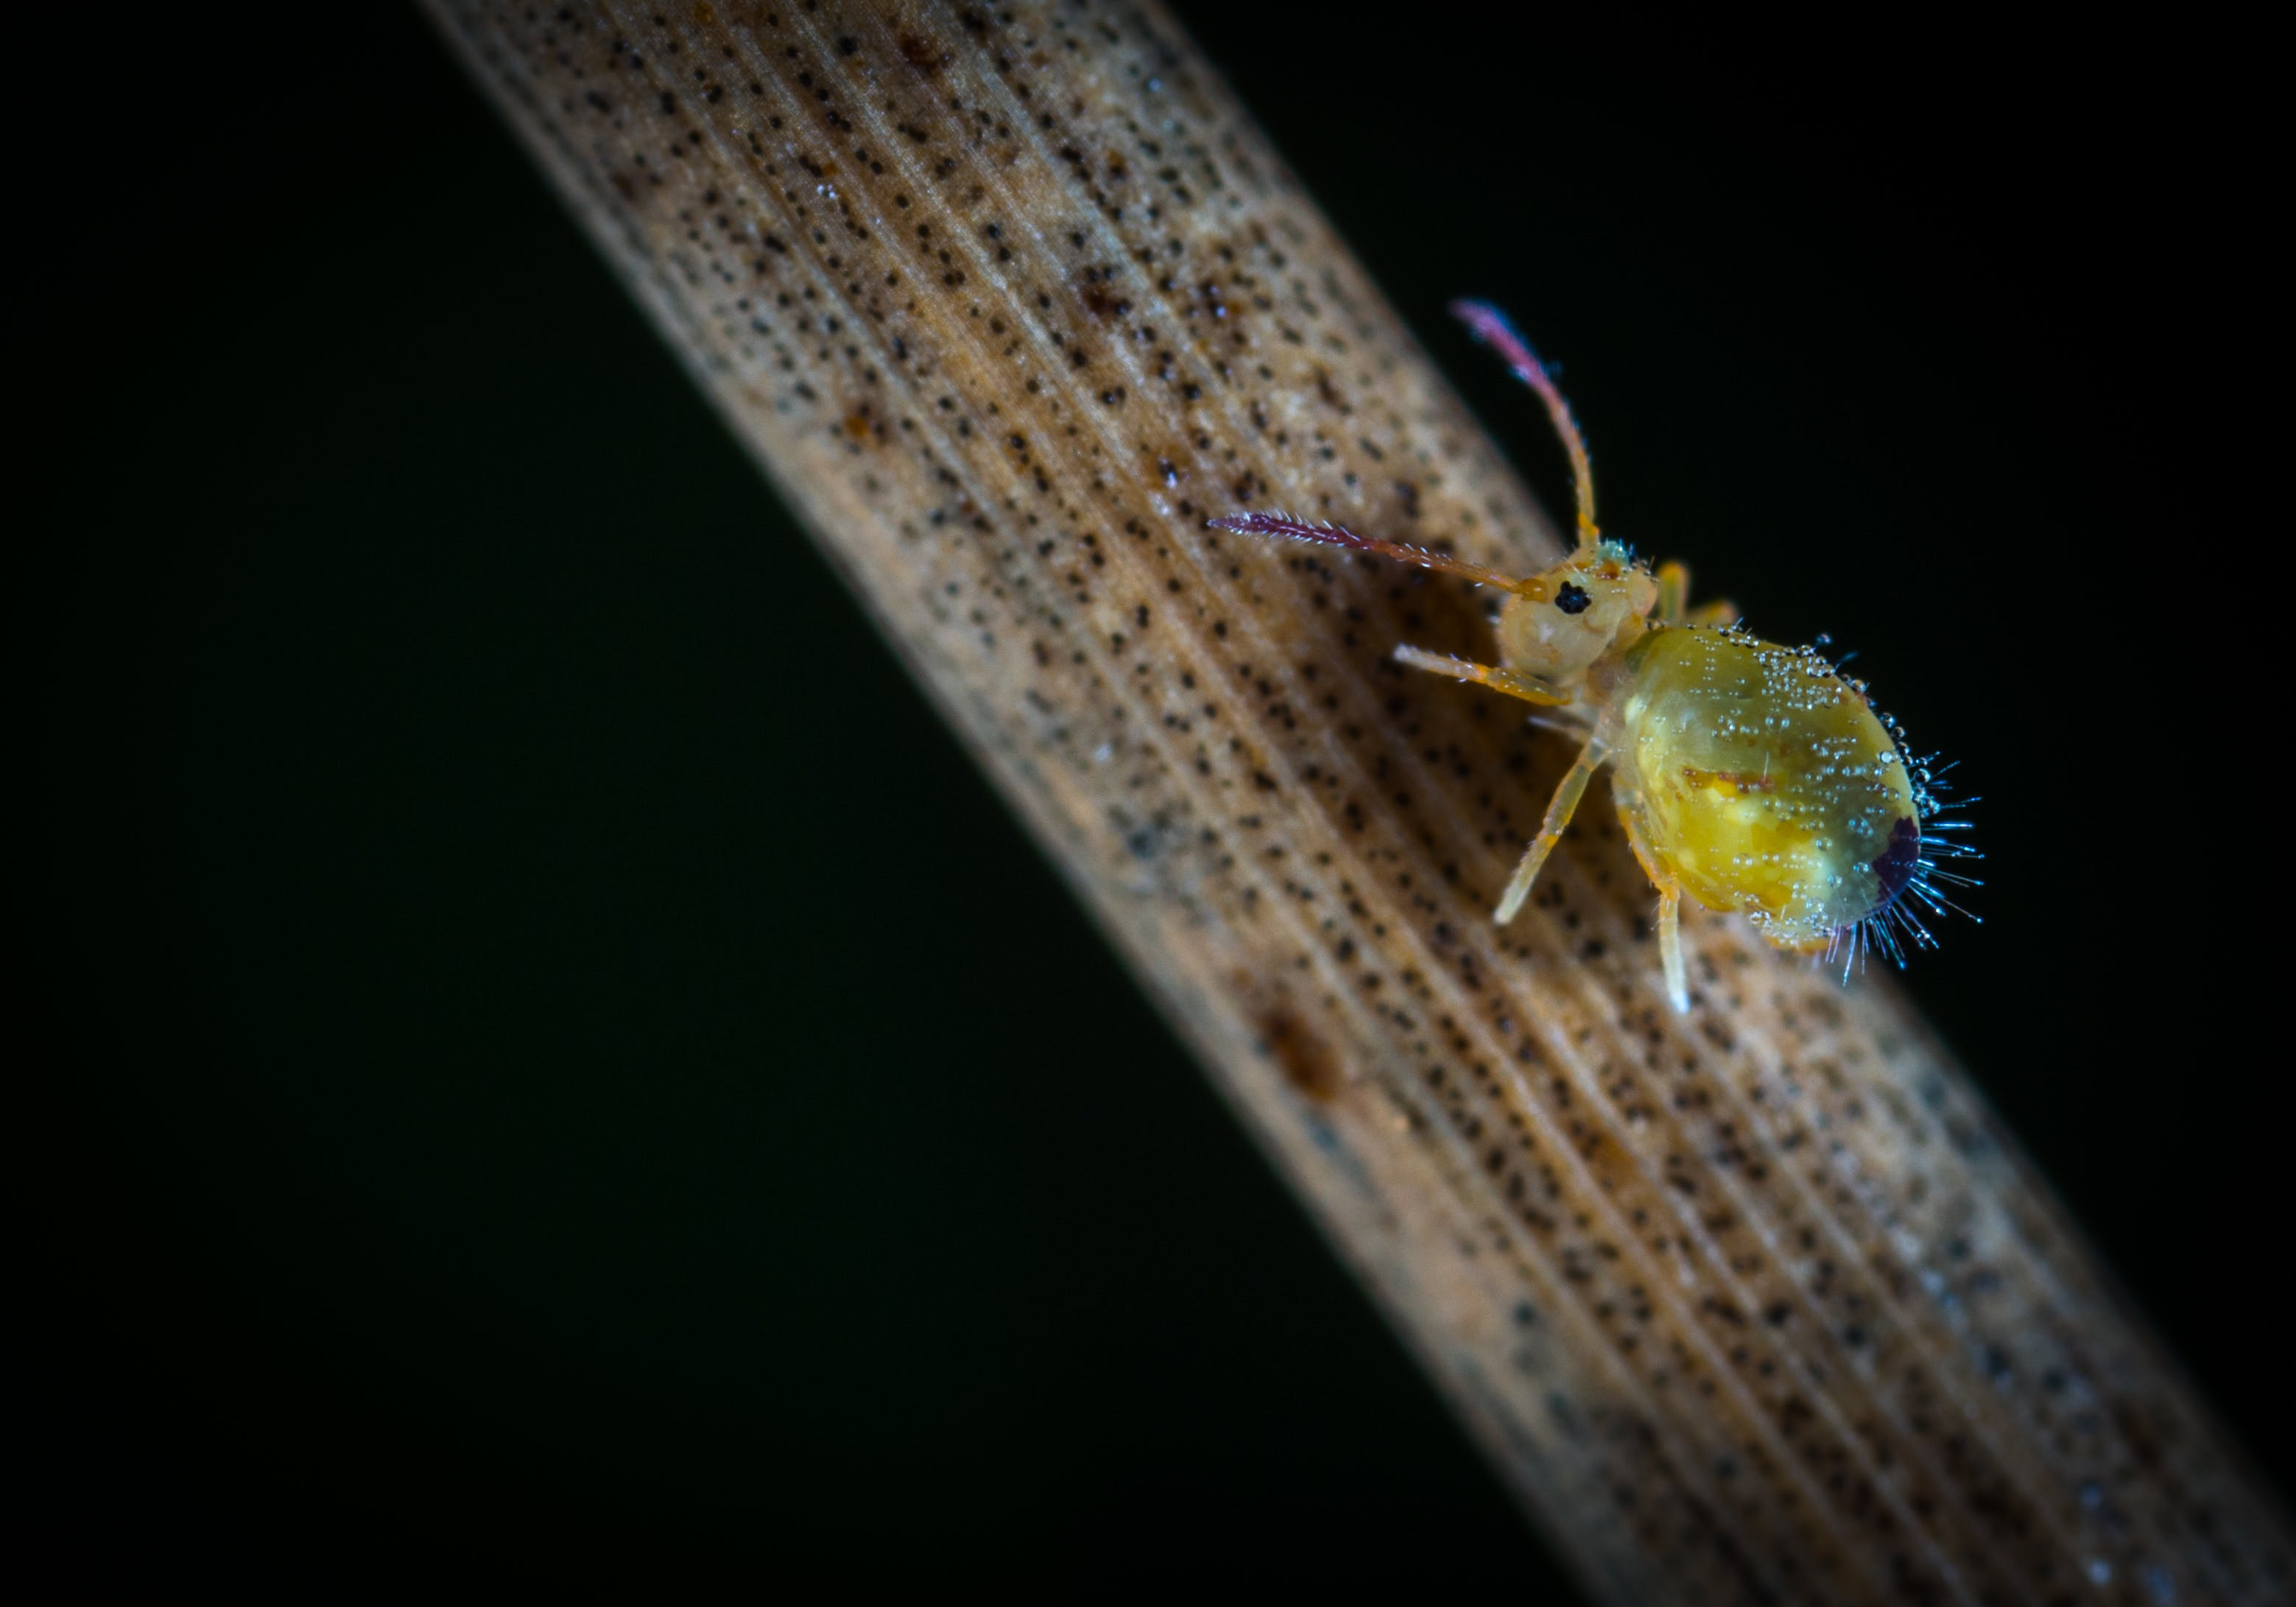 Macro Photography Of Yellow Six Legged Insect